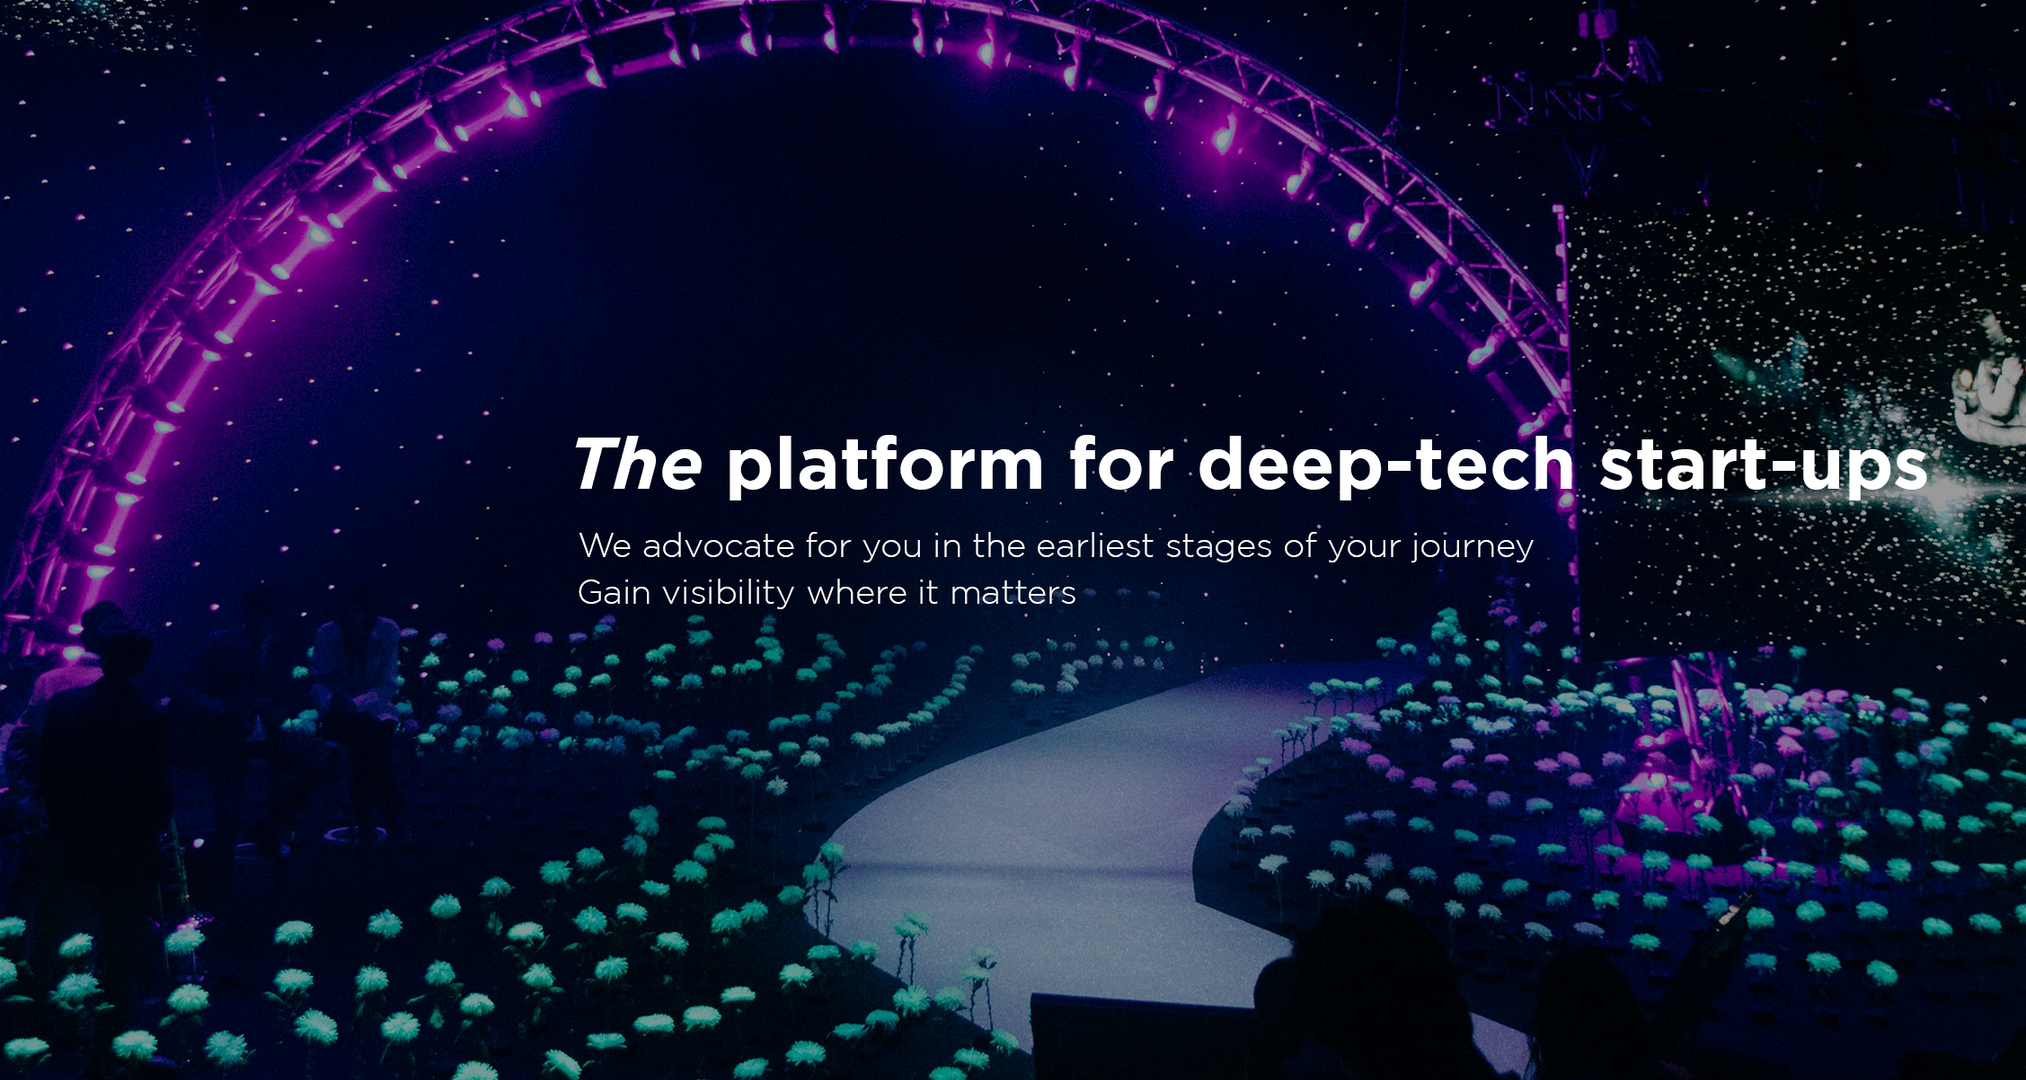 The platform for deep-tech start-up